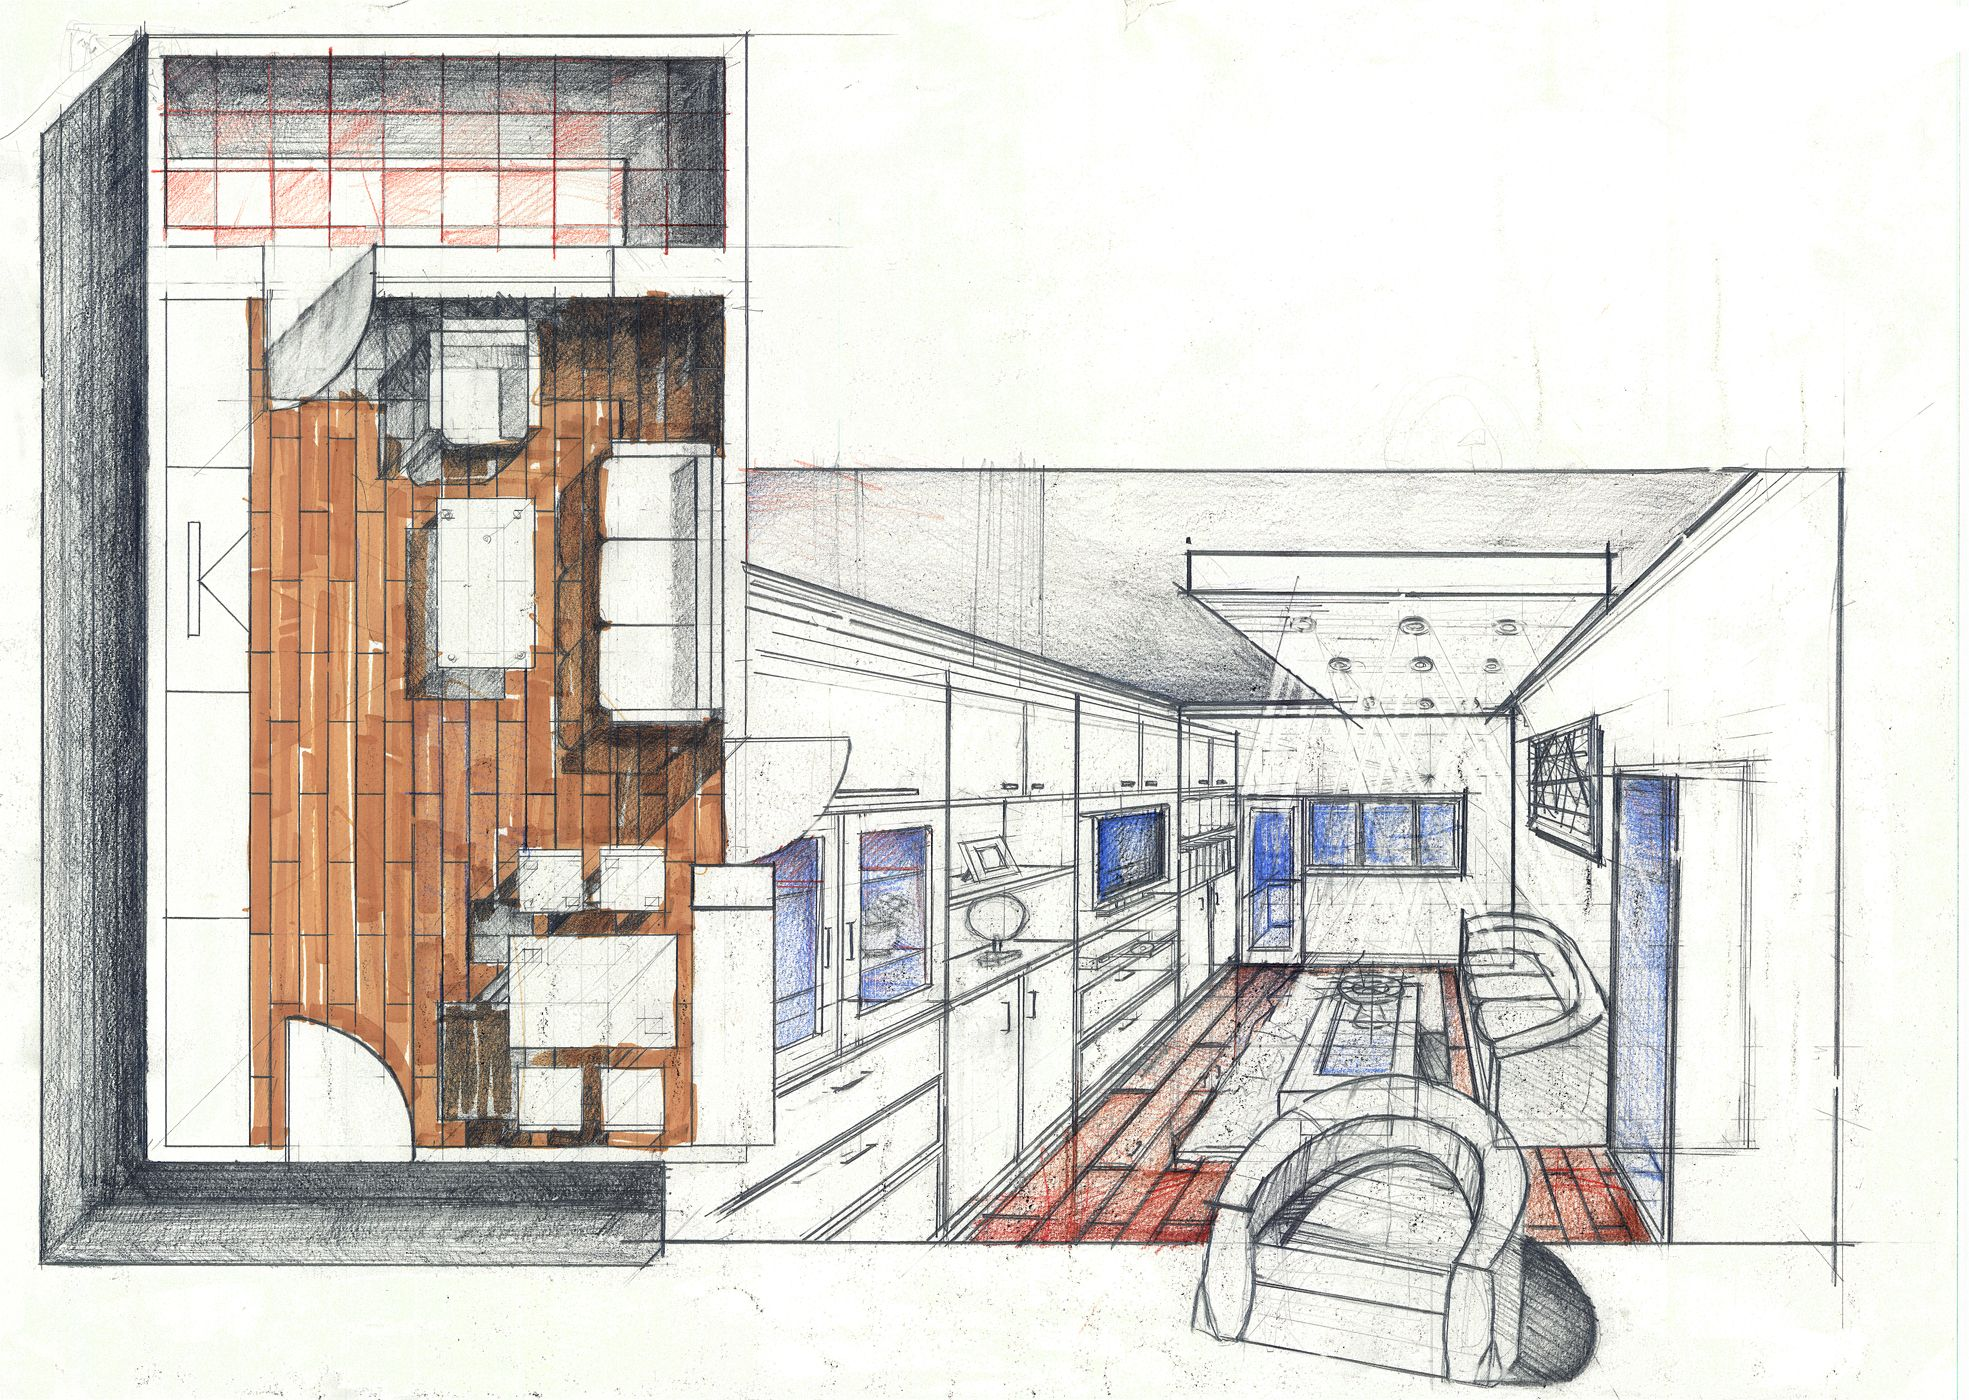 Living Room Perspective. Good foreground and perspective depth. Pencil + Colored Crayons + Marker on 50x70 Standard Paper, 5 Hours Completion Time #architecture #architect #rendering